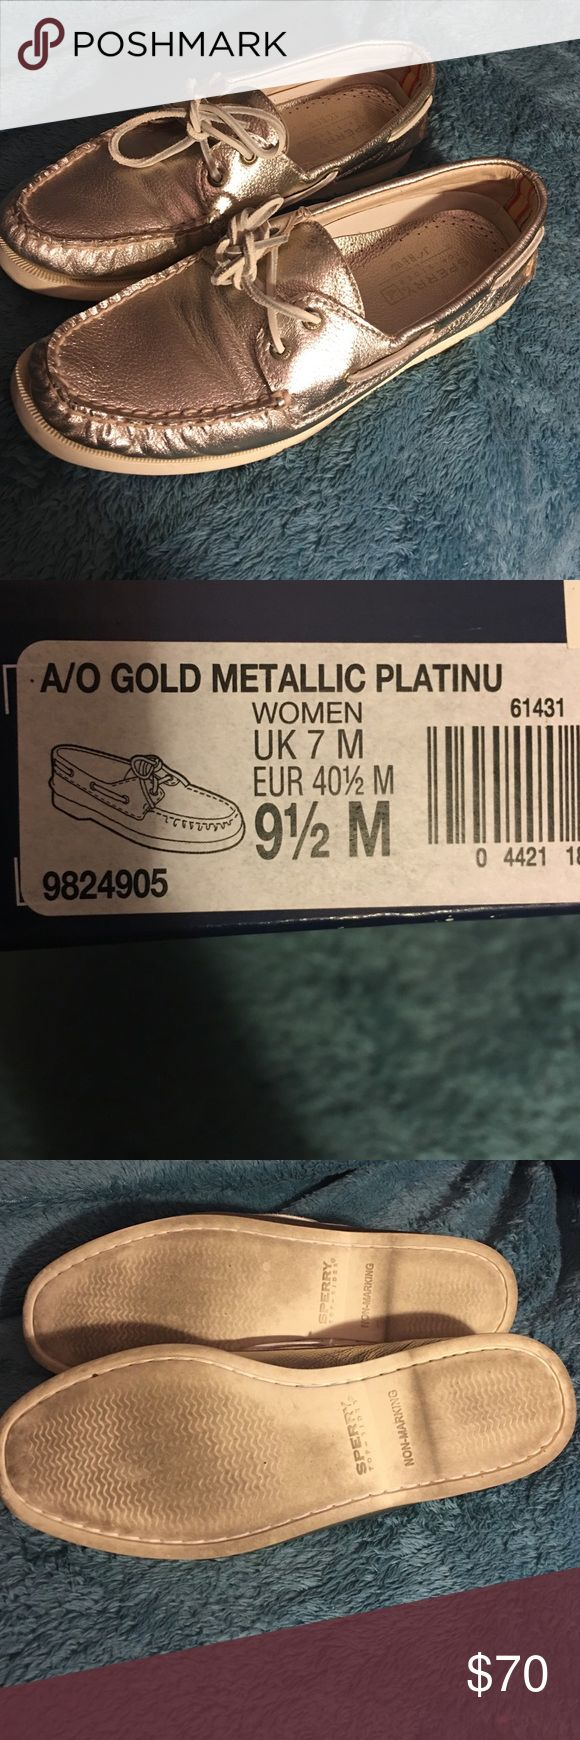 Metallic gold sperrys Worn once, light wear in soles. Pictured label on box- however sale will not include box as its damaged. Will accept reasonable offers- no trades please. Purchased these at a jcrew store. Sperry Top-Sider Shoes Sneakers